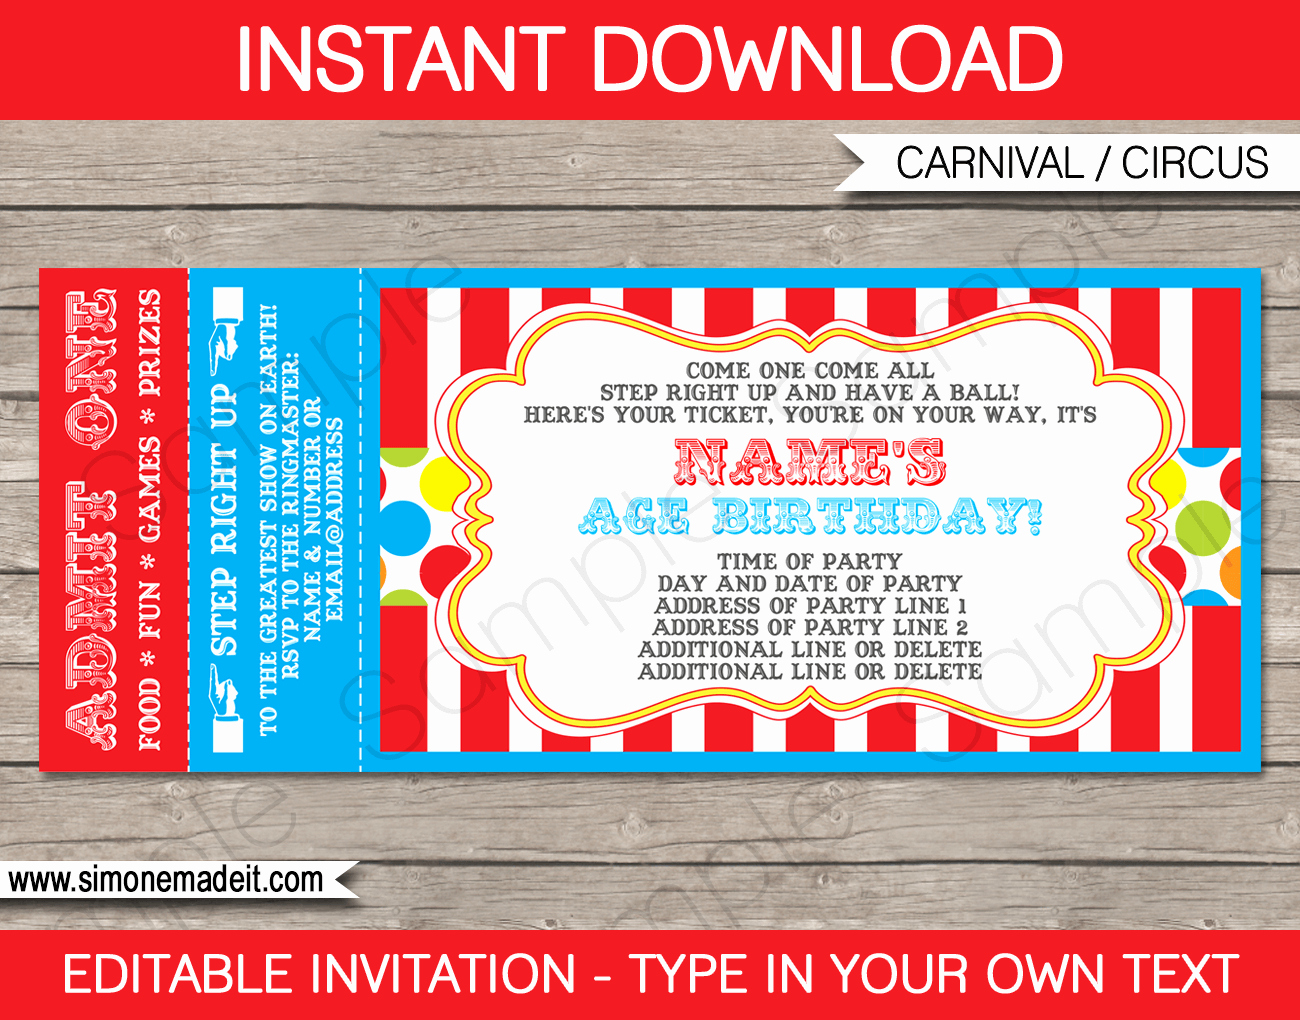 Circus Invitation Template Free Lovely Carnival Ticket Invitation Template